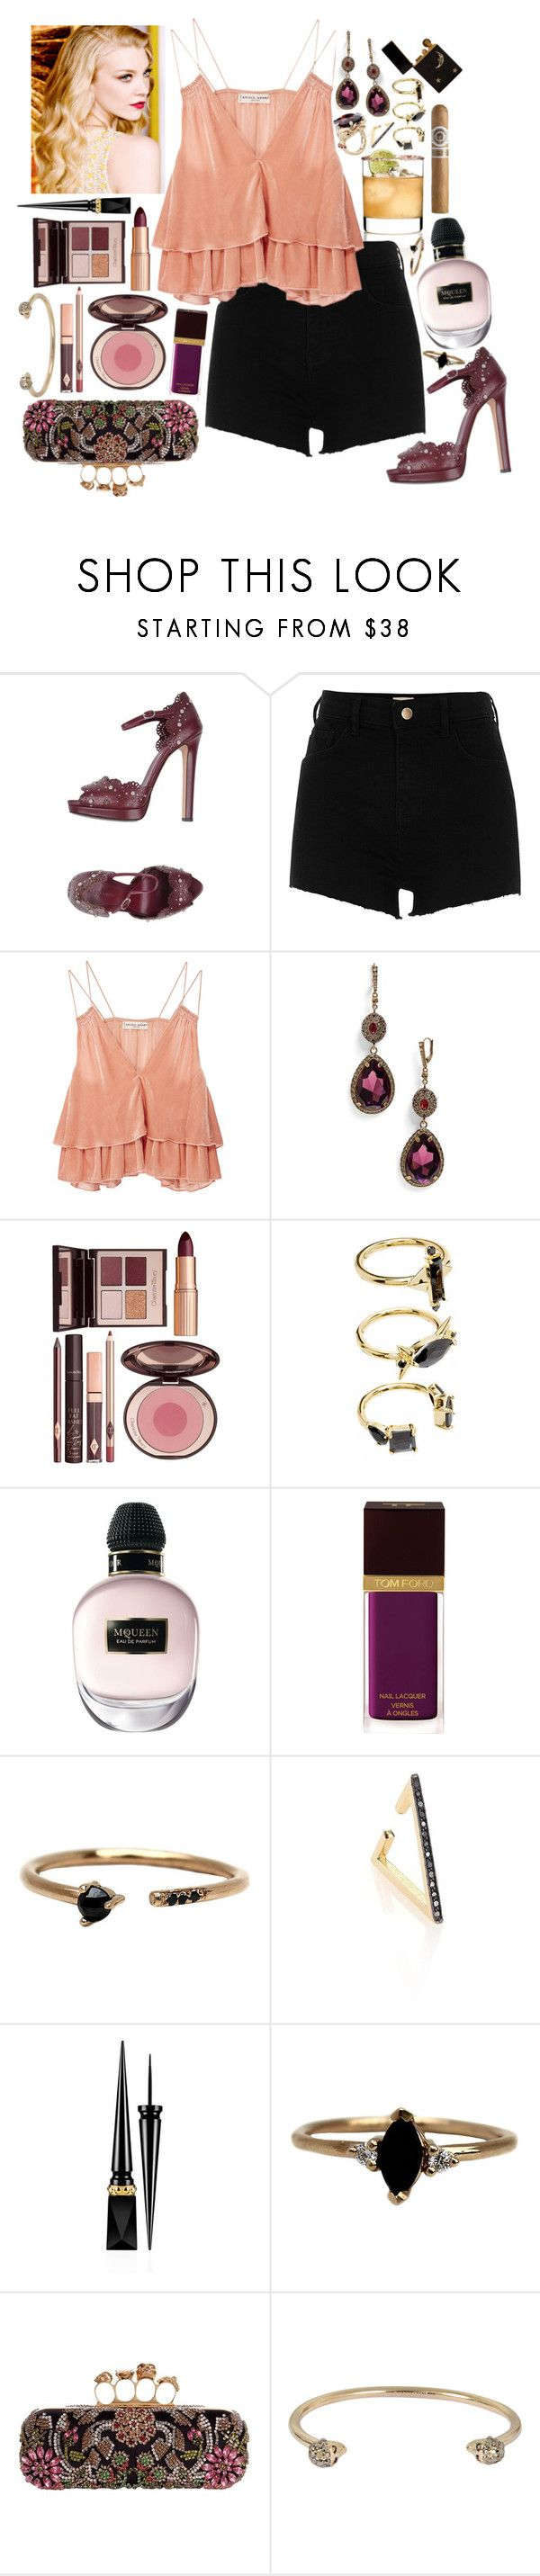 """Woman - Kesha ft.The Dap-Kings Horns"" by leo8august ❤ liked on Polyvore featuring Alexander McQueen, River Island, Apiece Apart, Charlotte Tilbury, Noir Jewelry, Tom Ford, LUMO, ZoÃ« Chicco and Christian Louboutin"